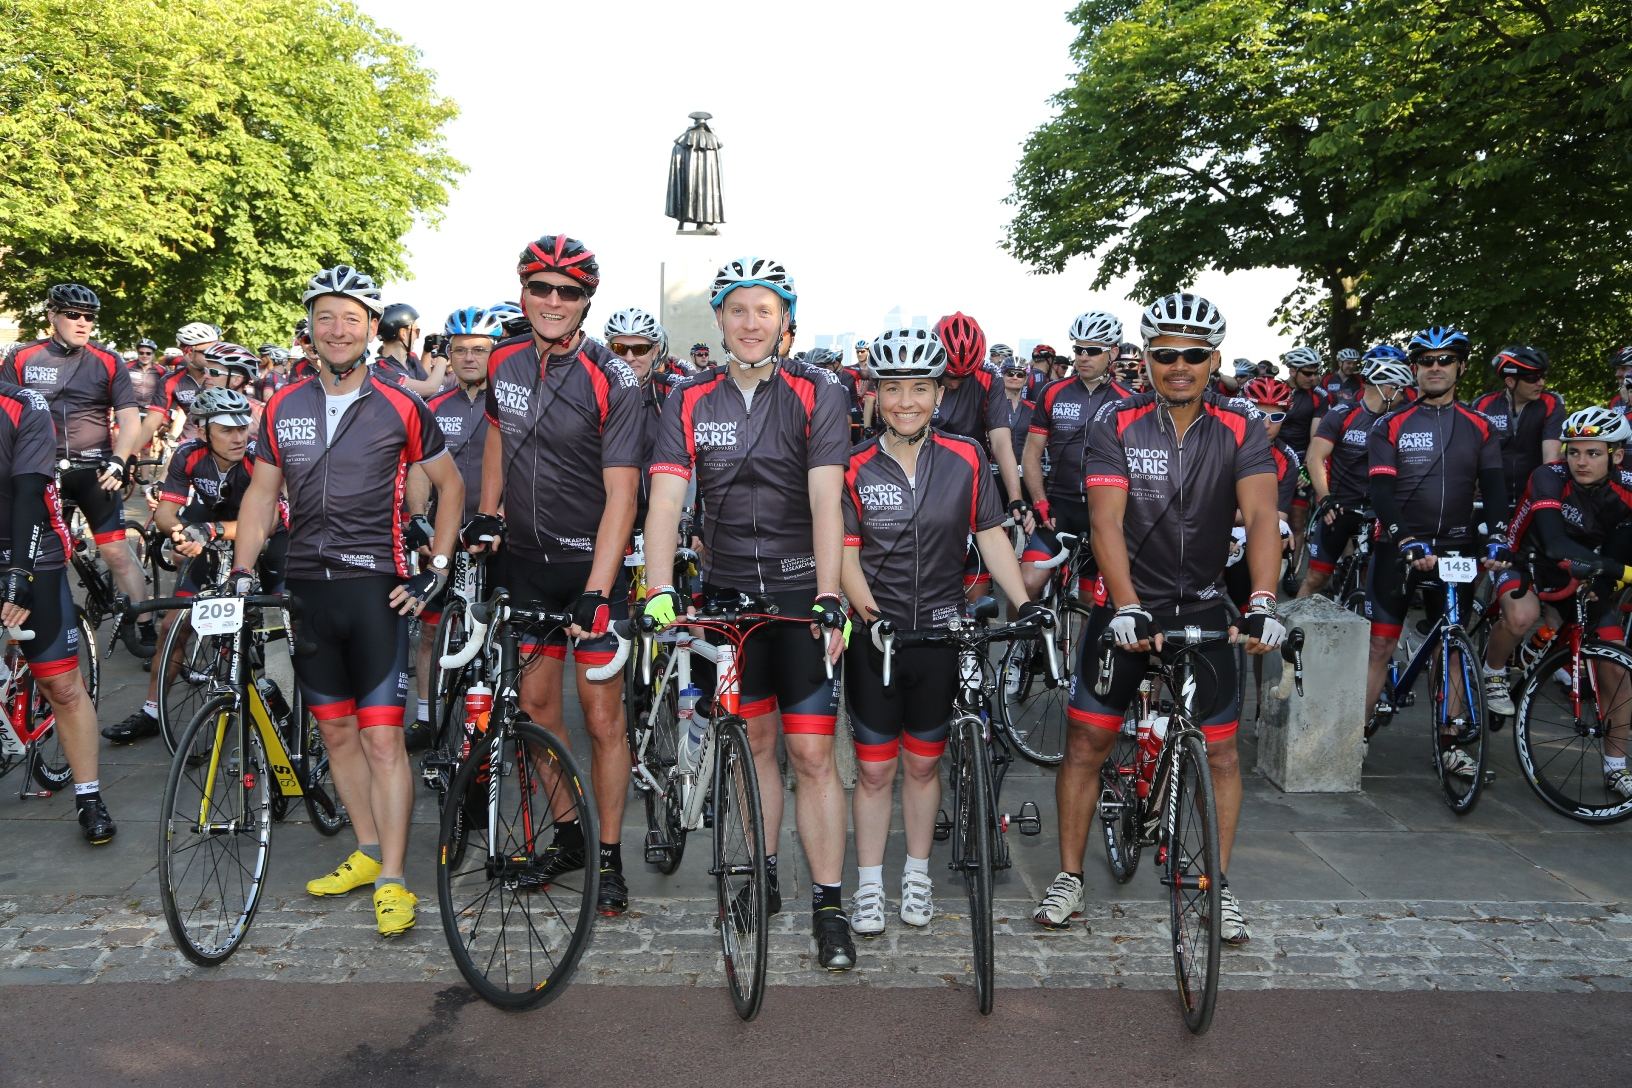 The Unstoppables' London to Paris